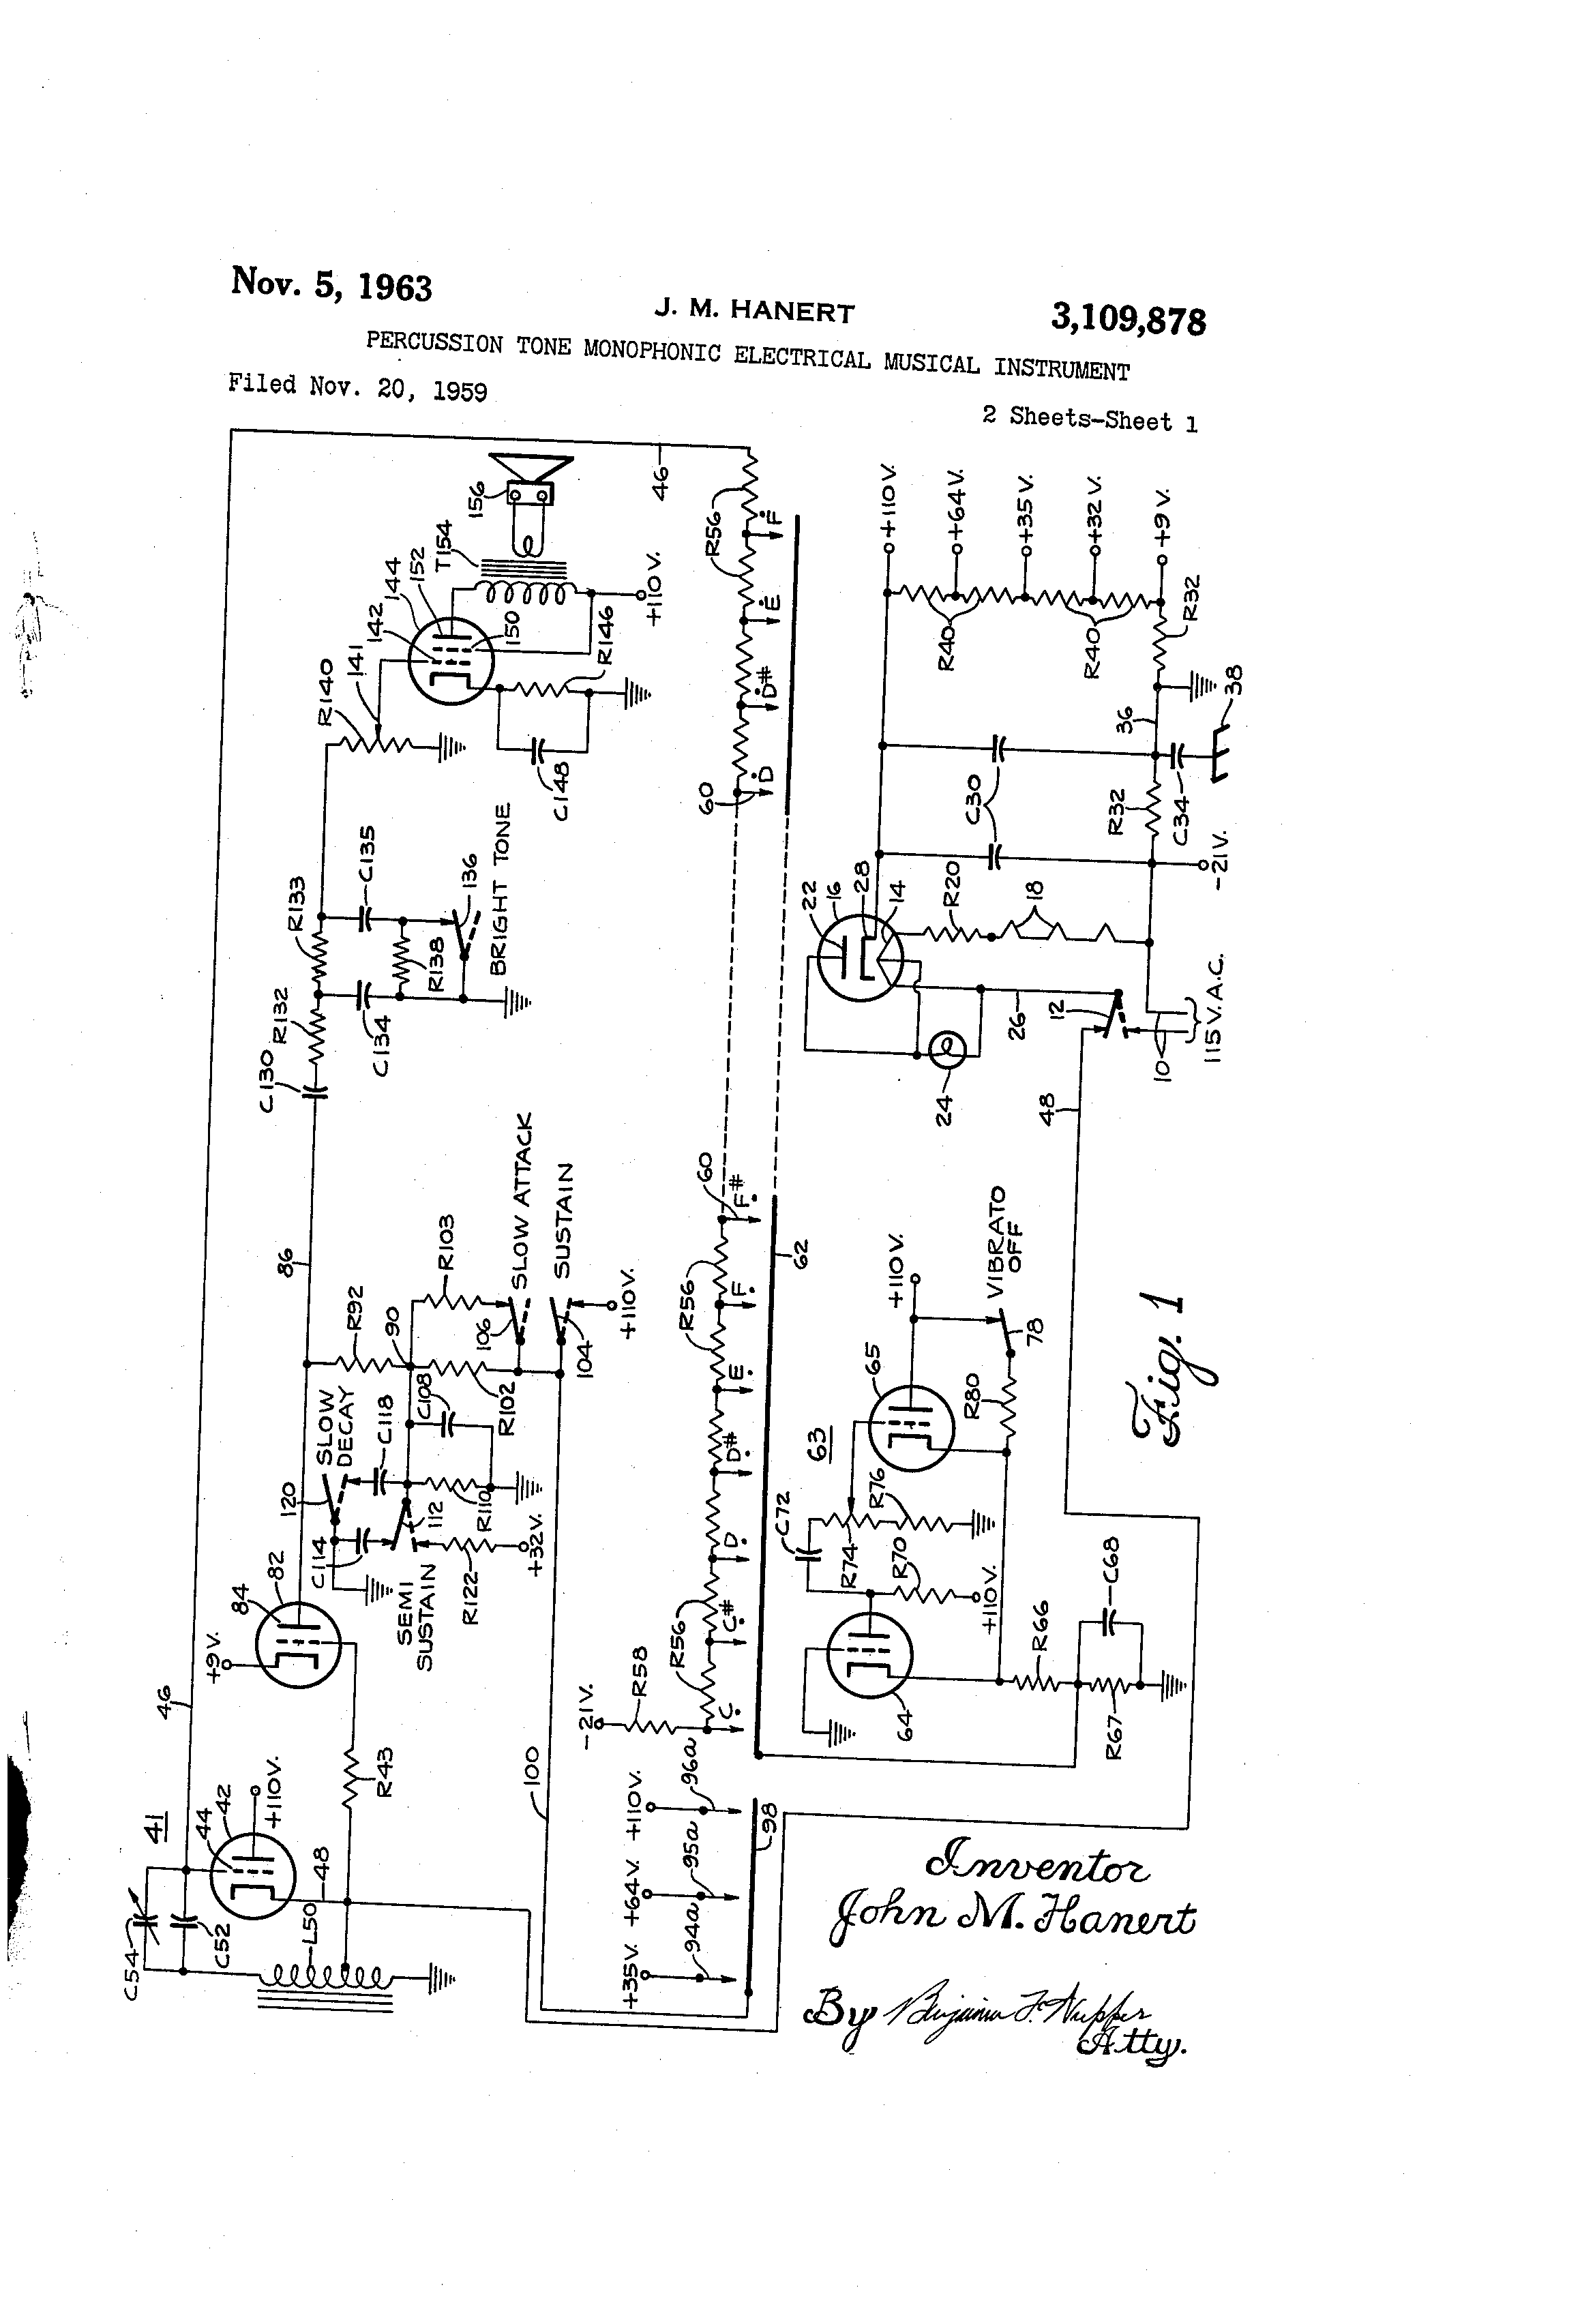 Brevet Us3109878 Percussion Tone Monophonic Electrical Musical Schematics How Do I Change The Frequency Of This Vibratocircuit Patent Drawing